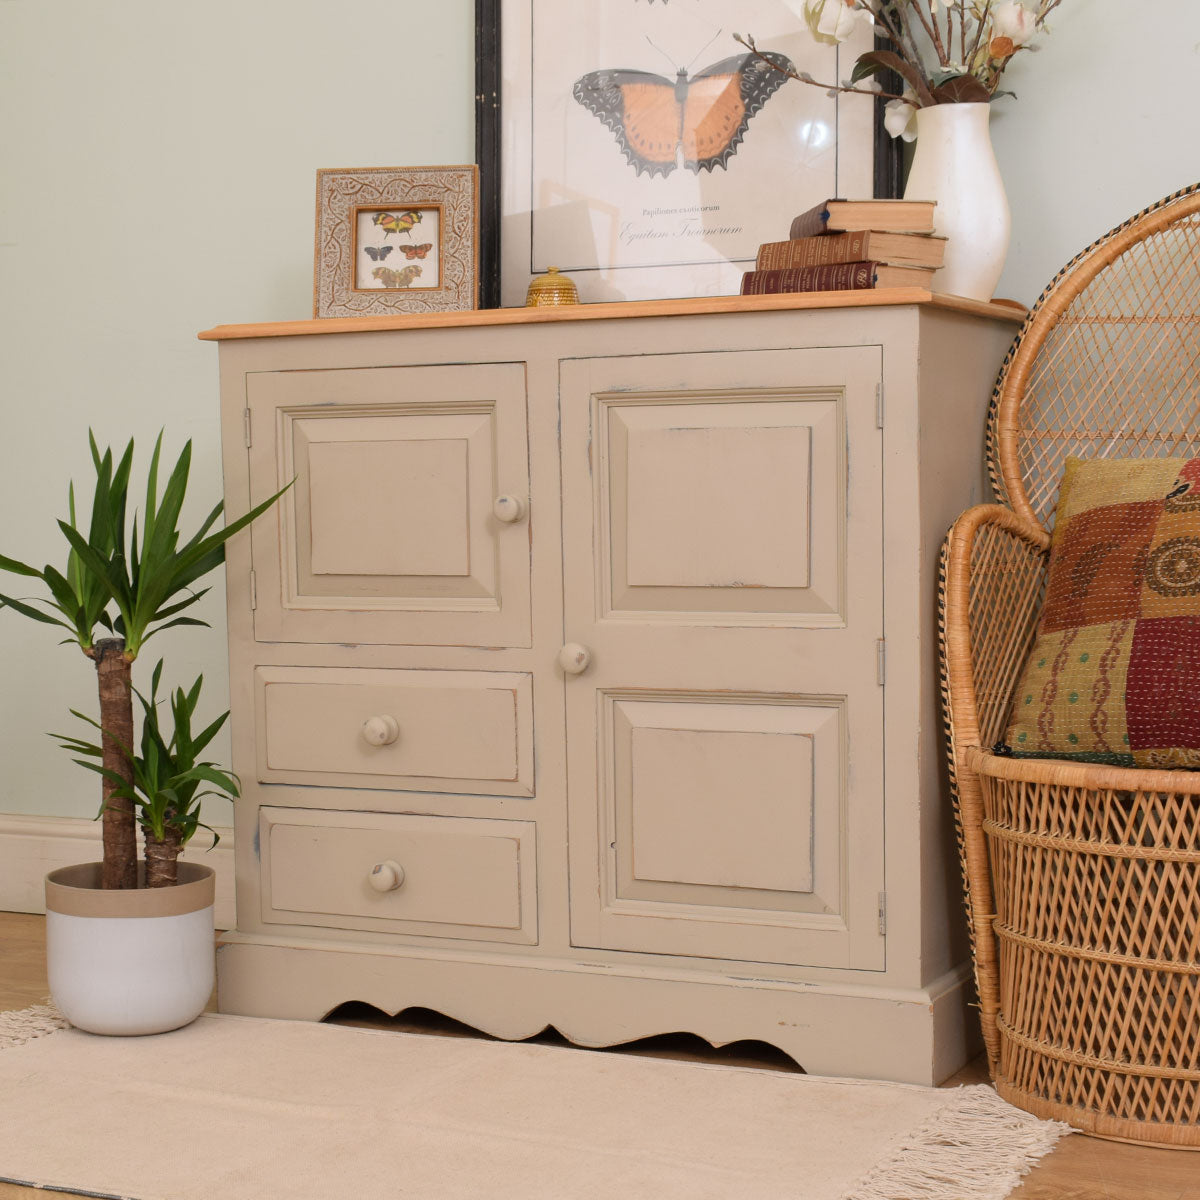 Small Painted sideboard